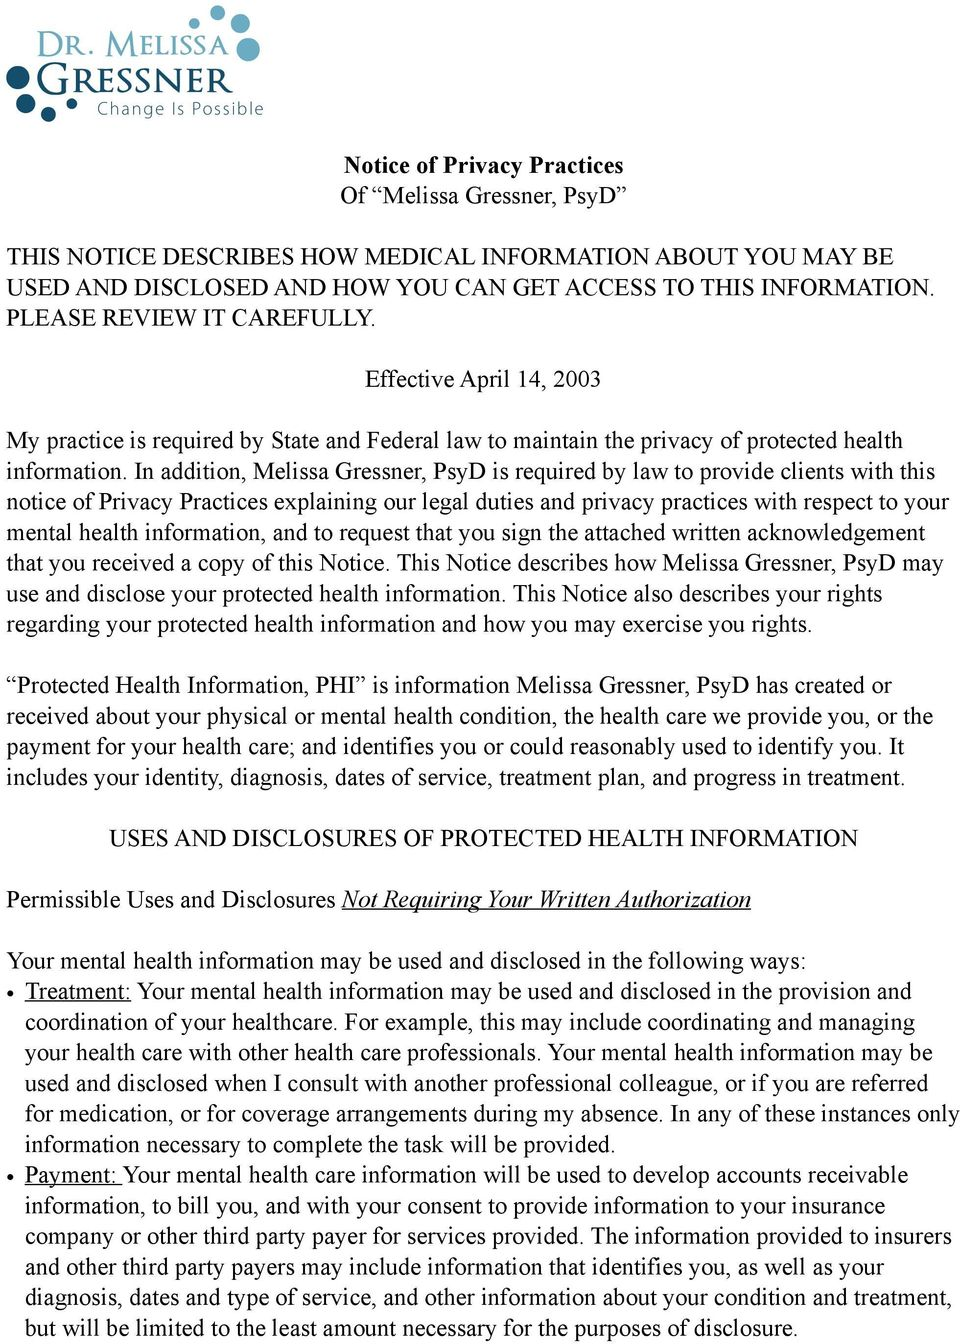 In addition, Melissa Gressner, PsyD is required by law to provide clients with this notice of Privacy Practices explaining our legal duties and privacy practices with respect to your mental health